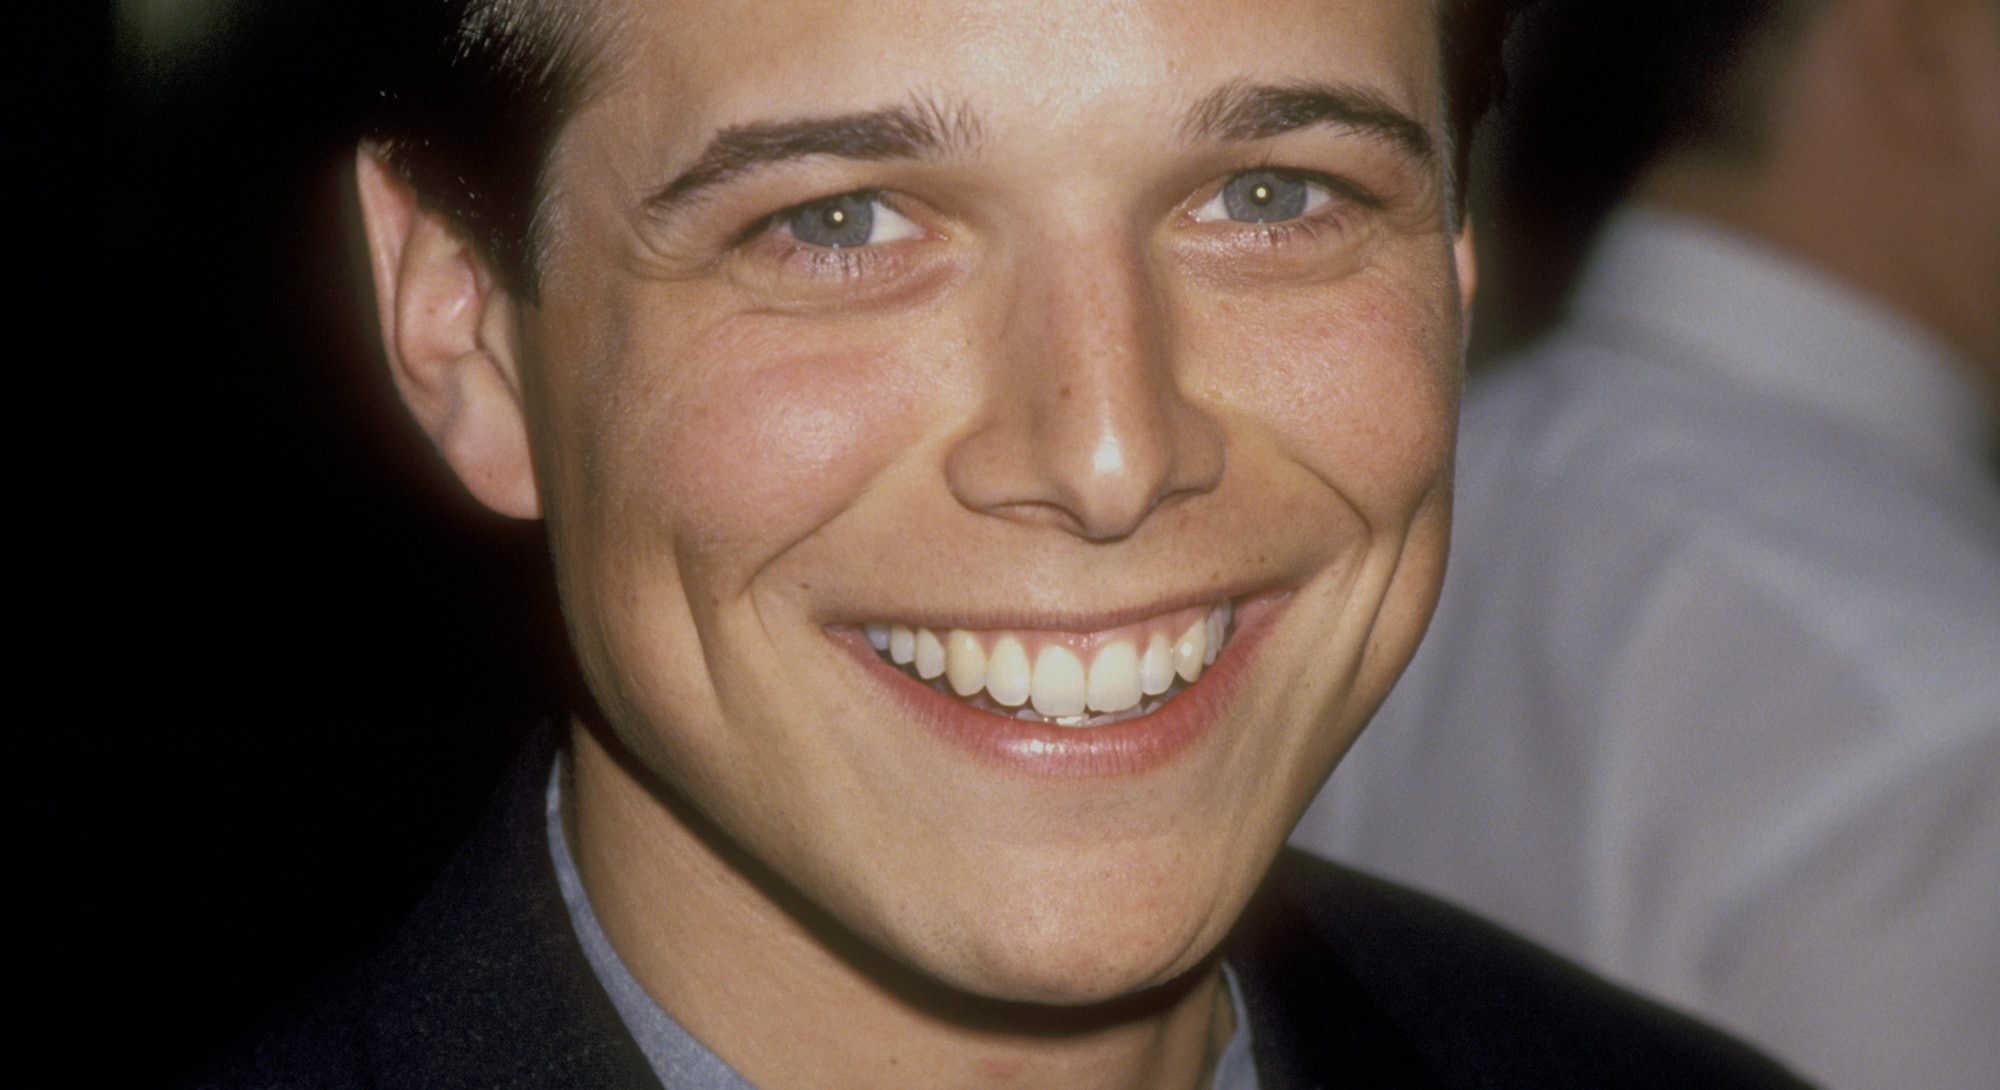 Scott Wolf's portrayal of Bailey made the name popular for boys.